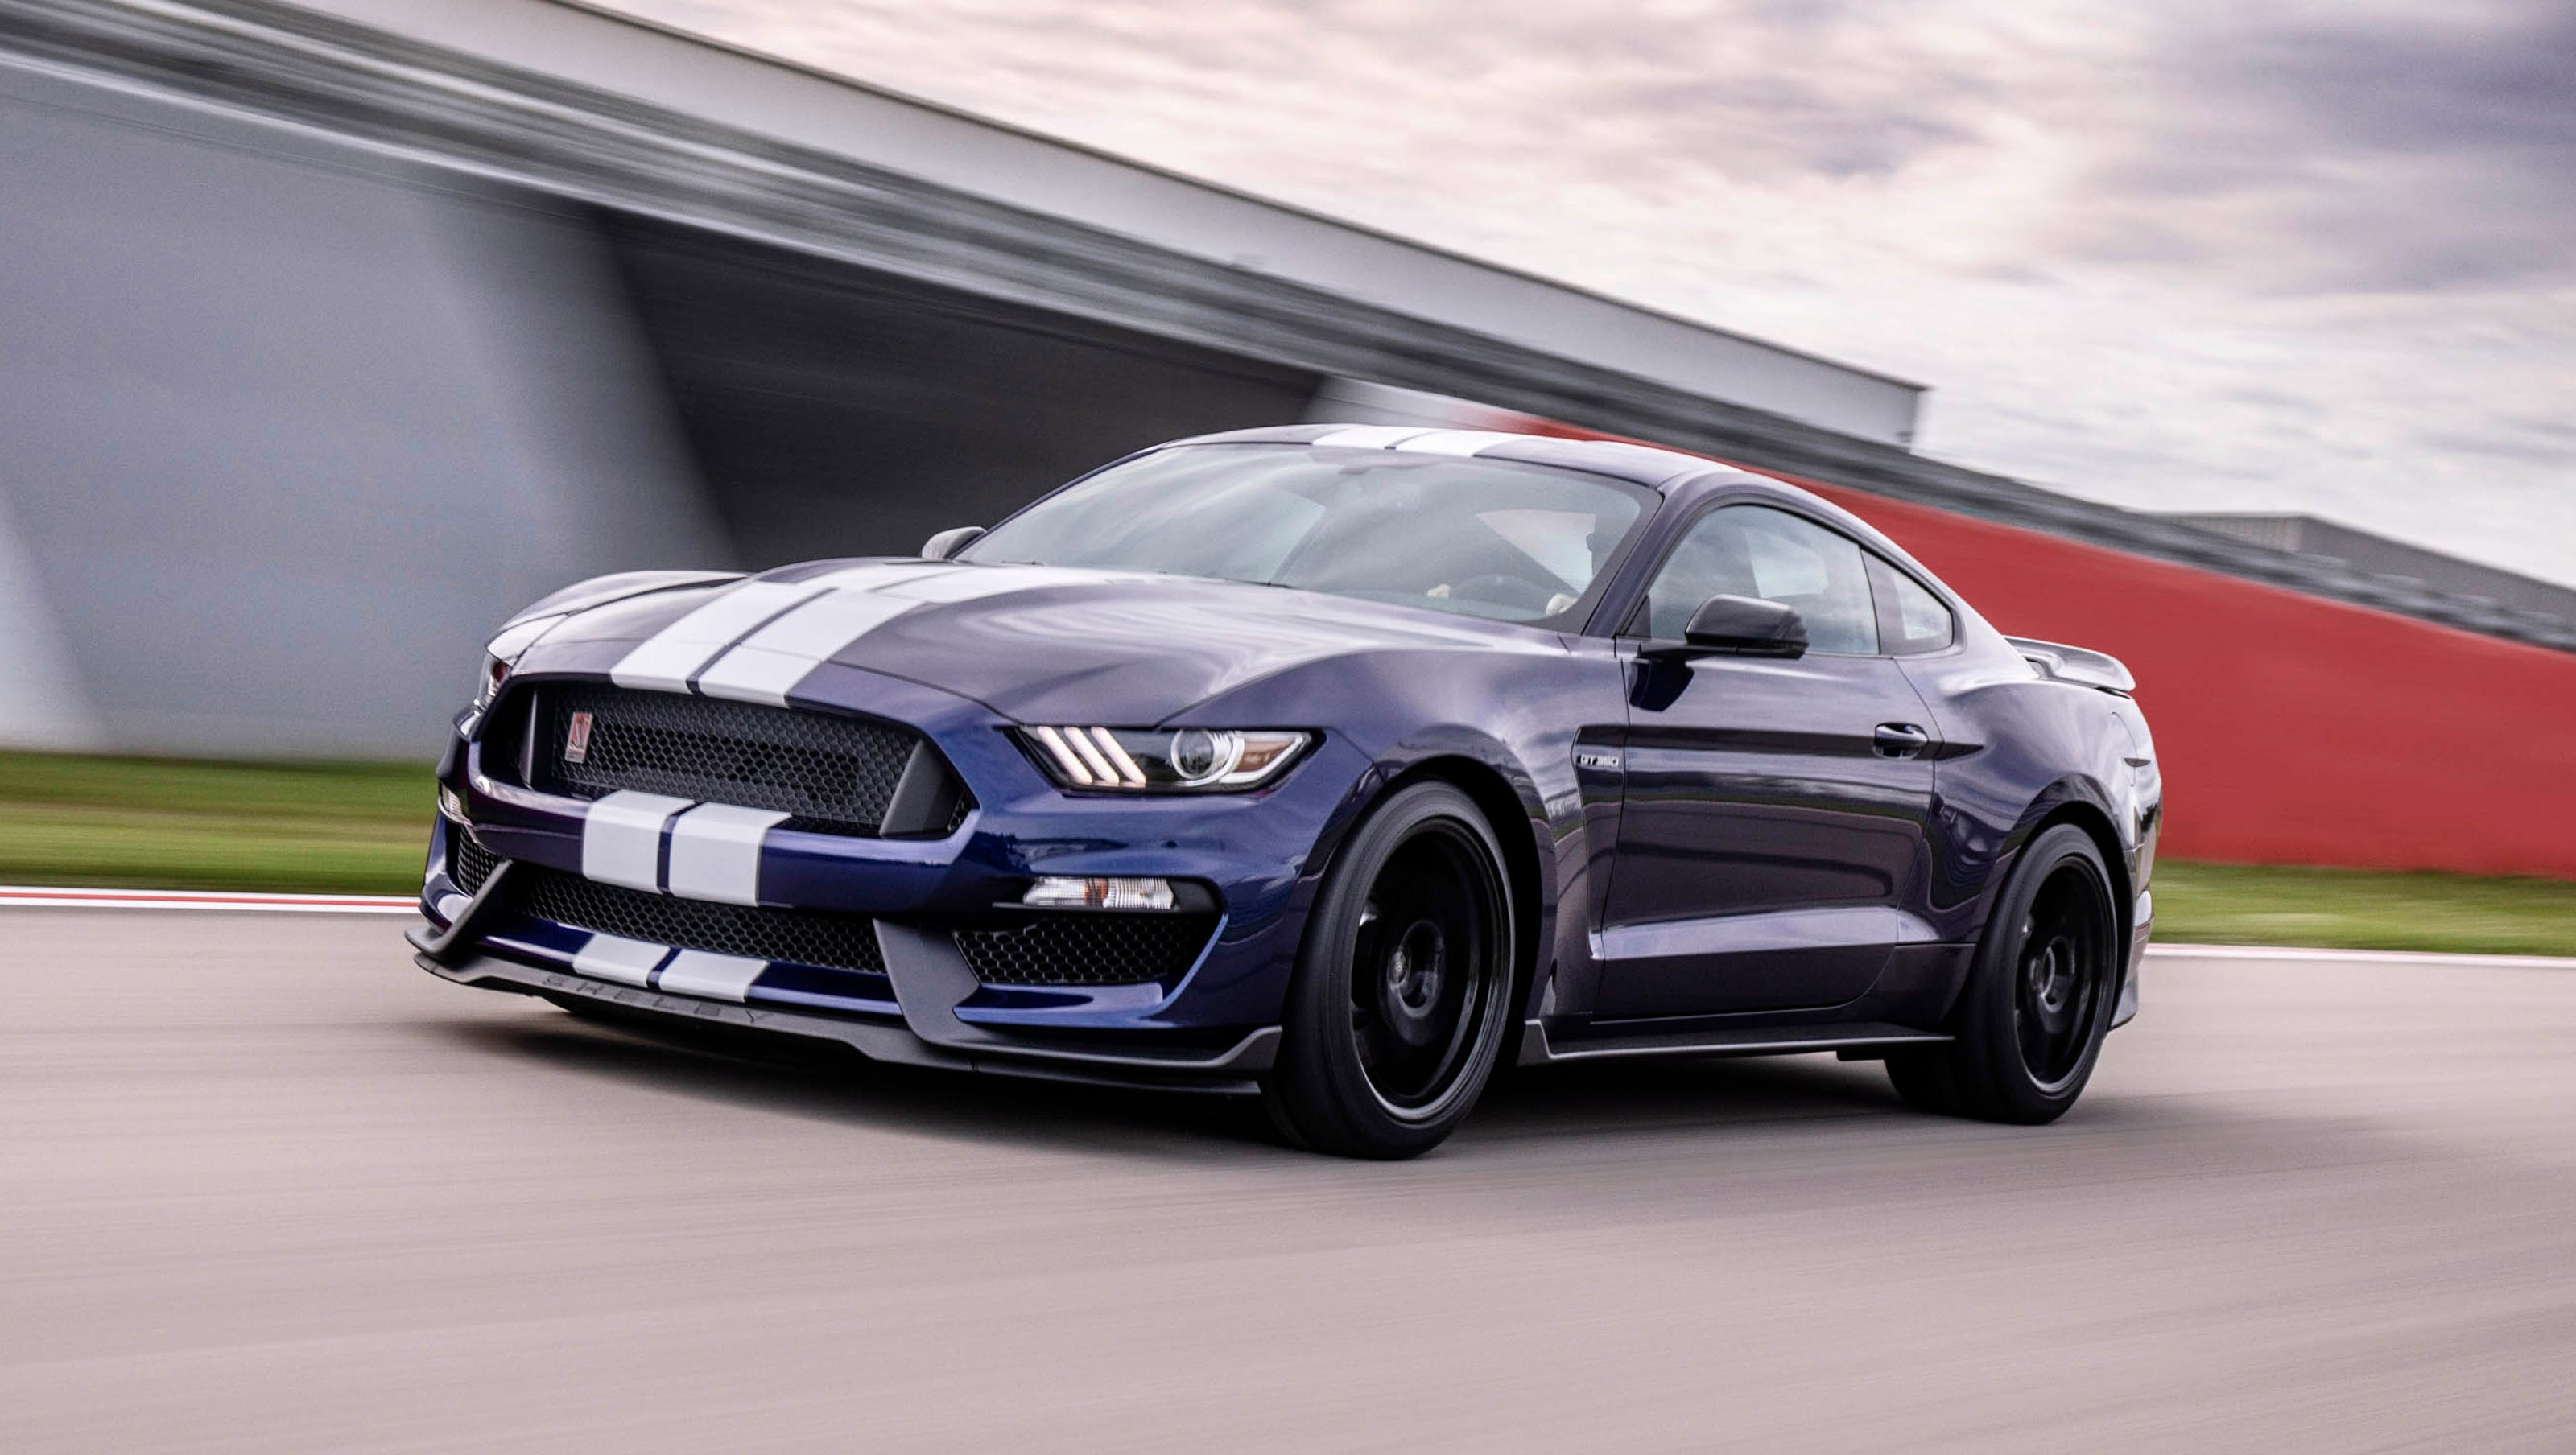 Ford reveals 2019 shelby gt350 mustang with upgrades